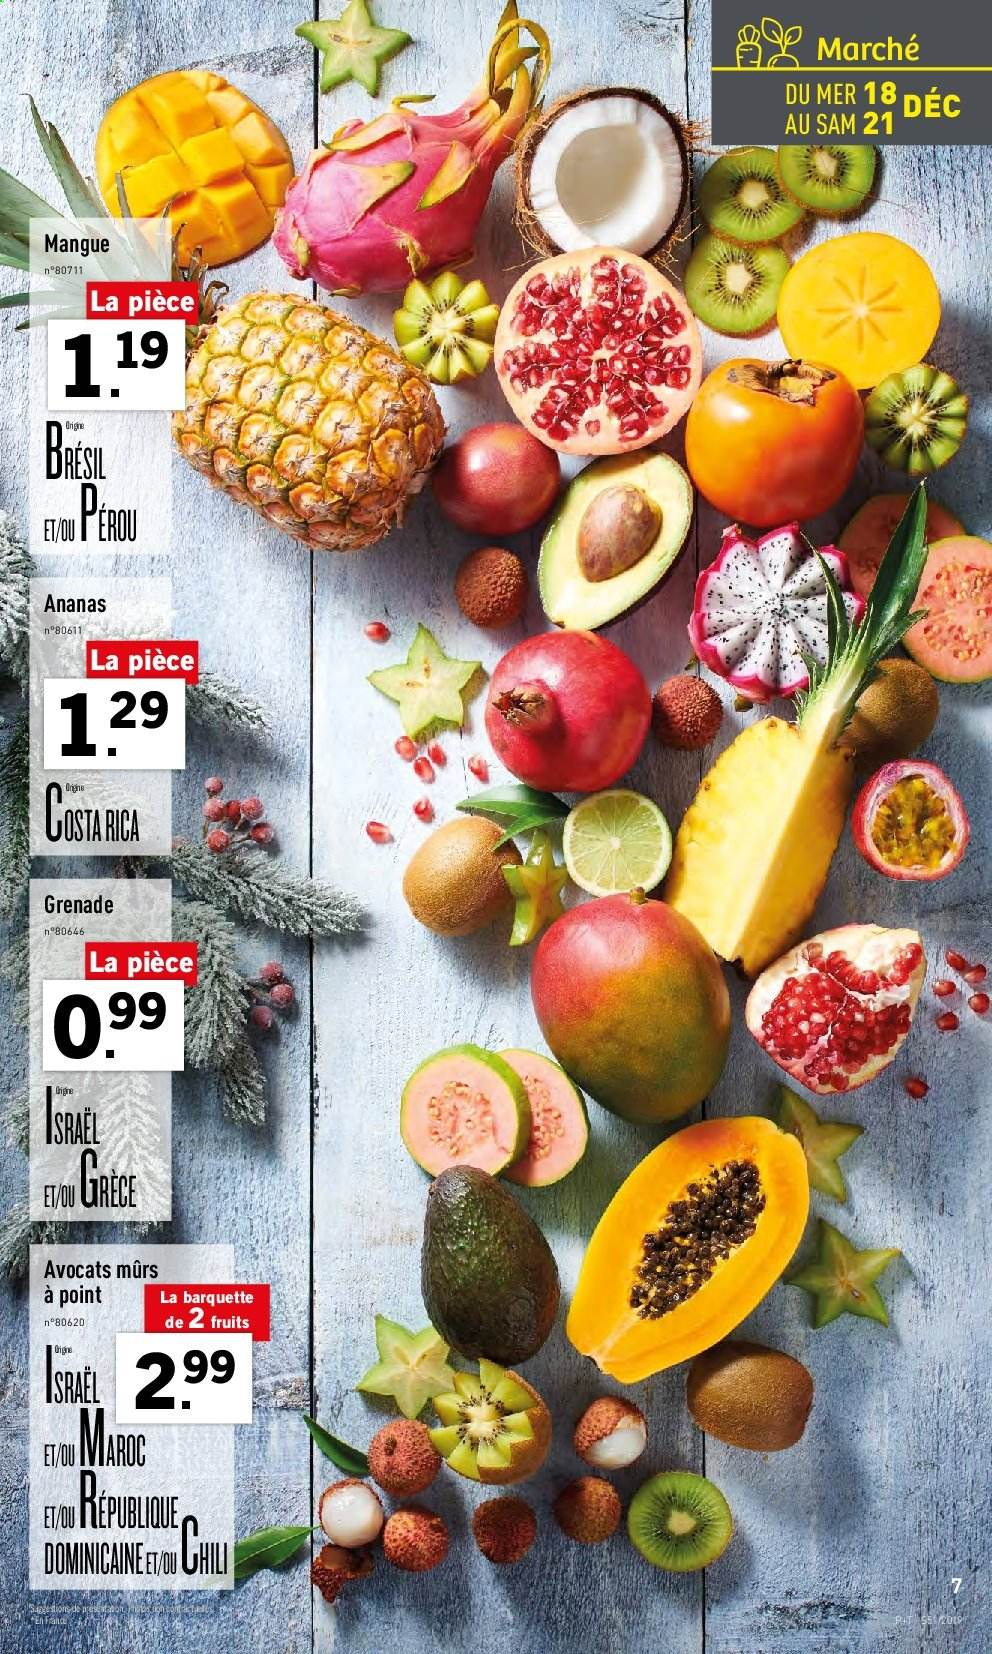 Catalogue Lidl - 18.12.2019 - 24.12.2019. Page 7.